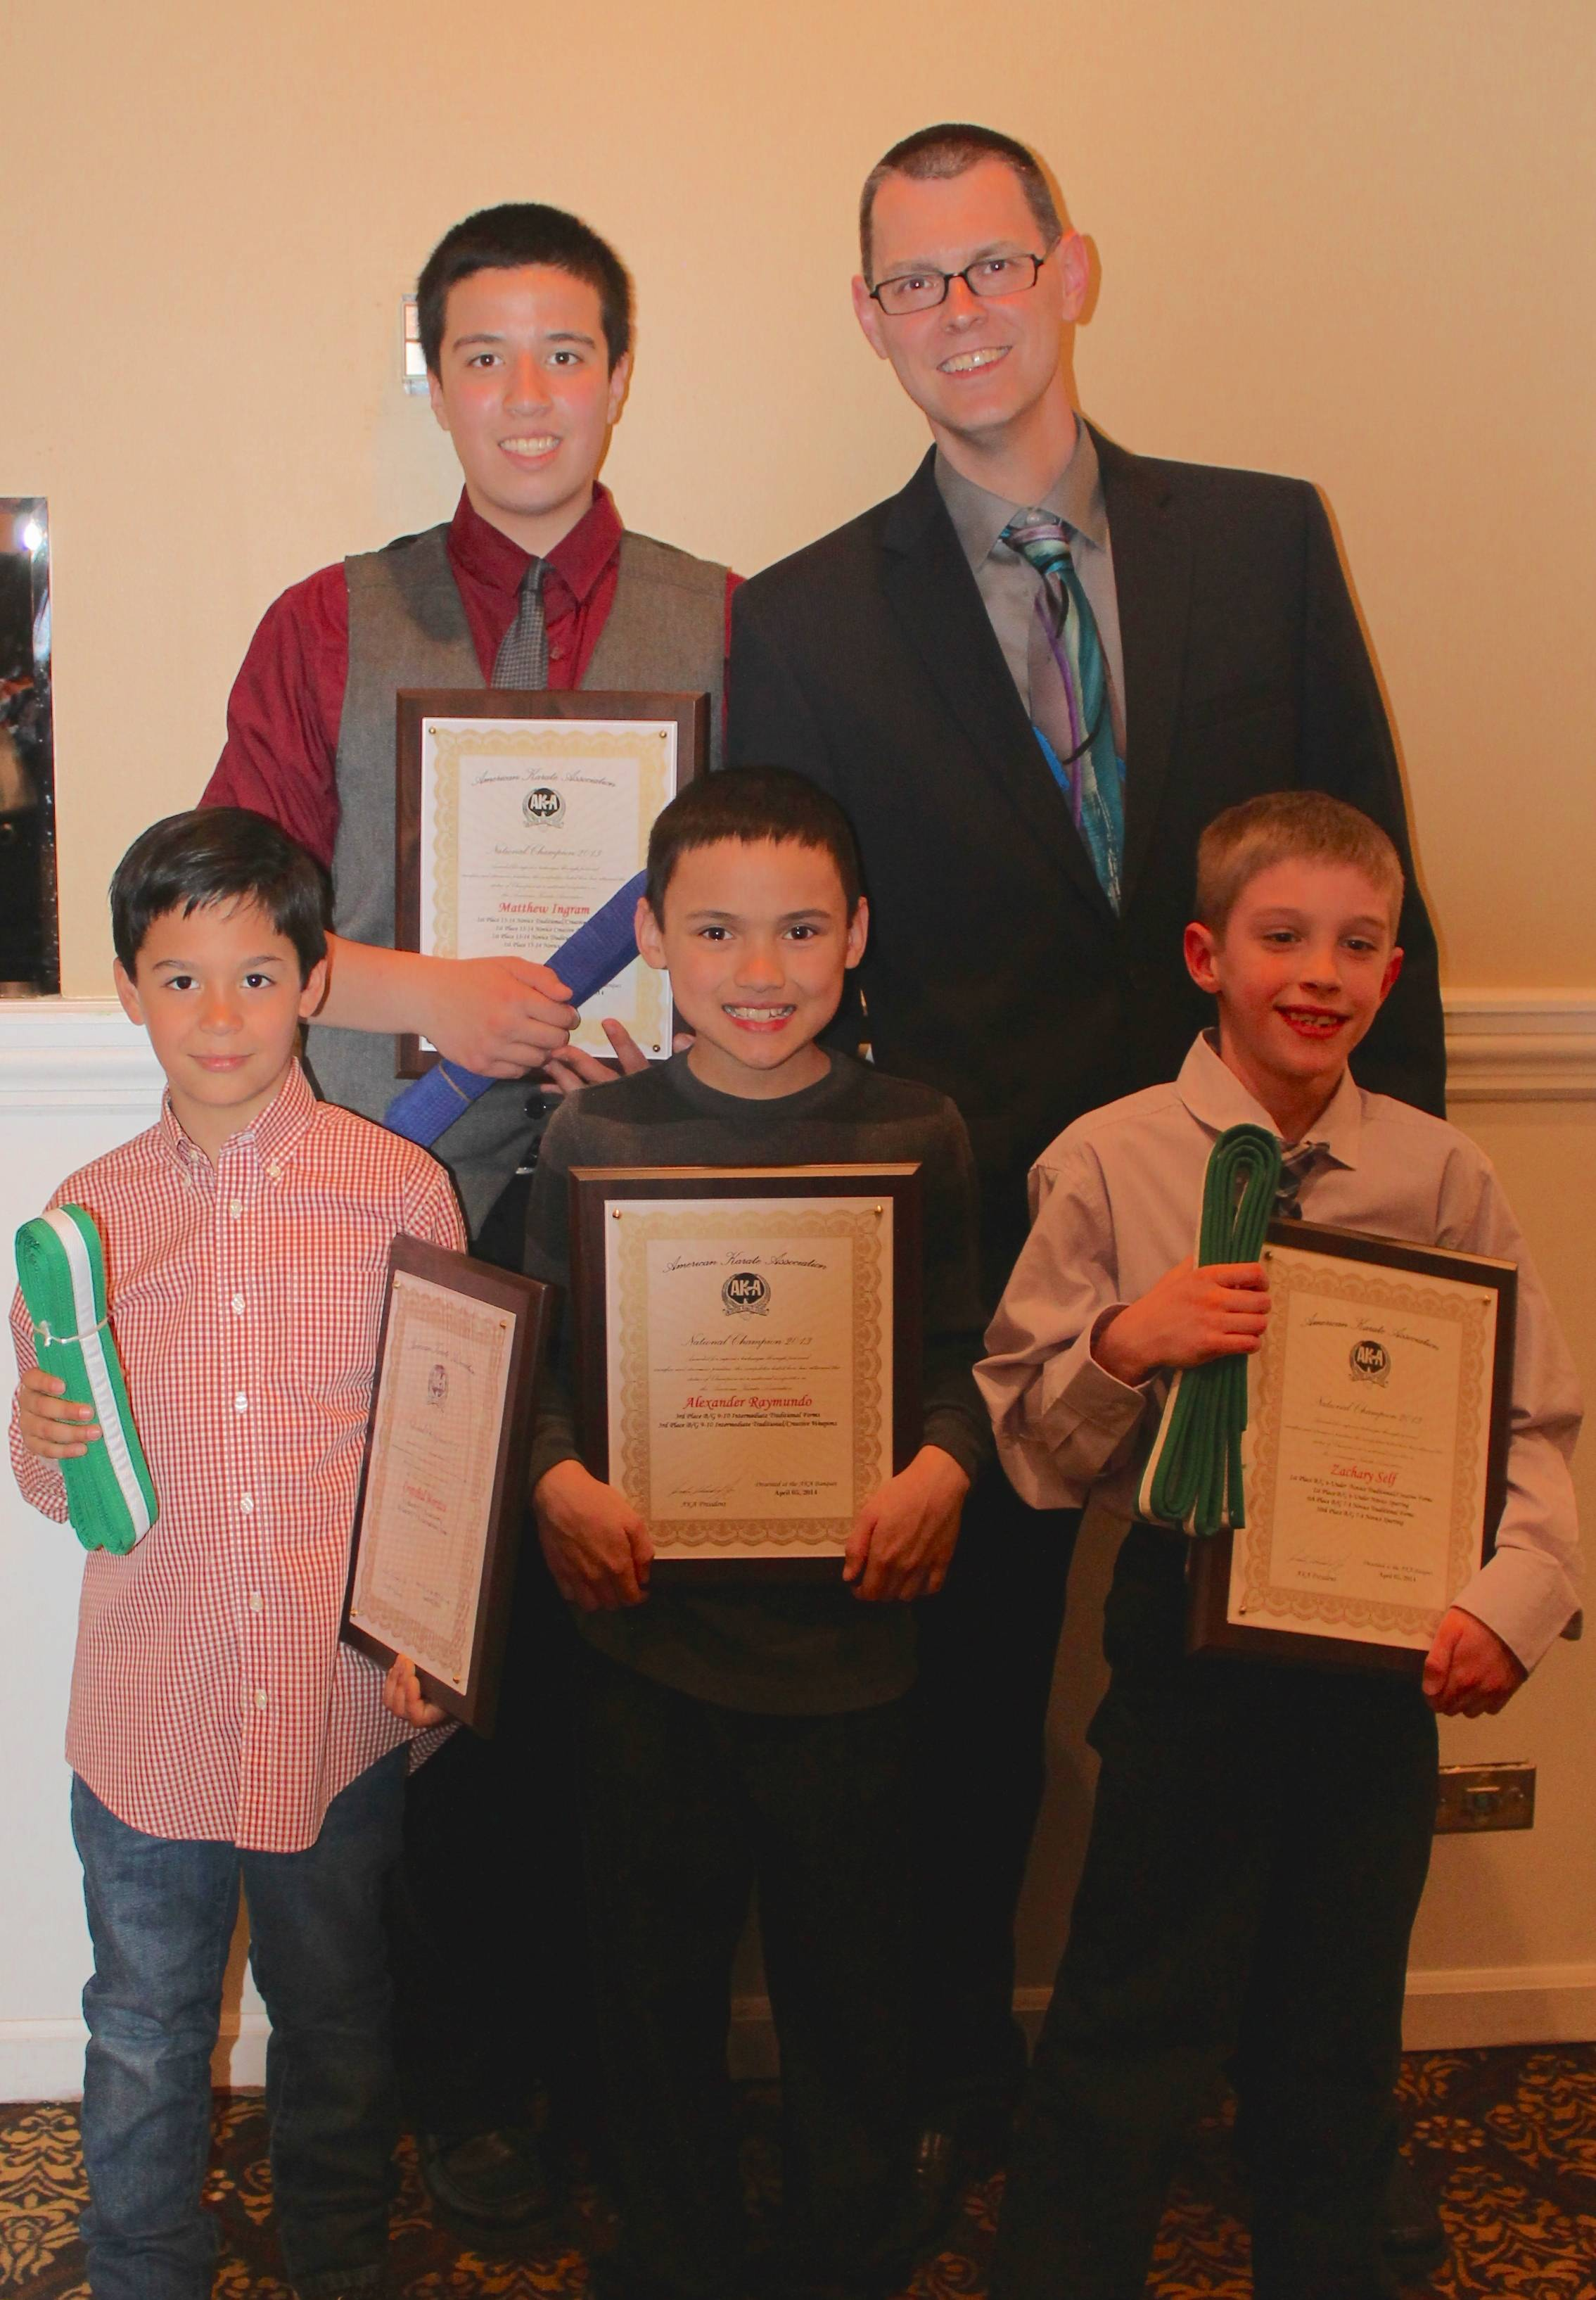 The Baekwoon Mu Sul Tigers show the national awards earned during the 2013 tournament season. Back row (l-r): Matthew Ingram, Sensei Jeremy Talbott. Front row (l-r): Cristobal Morales, Alex Raymundo, and Zachary SelfKathy Raymundo